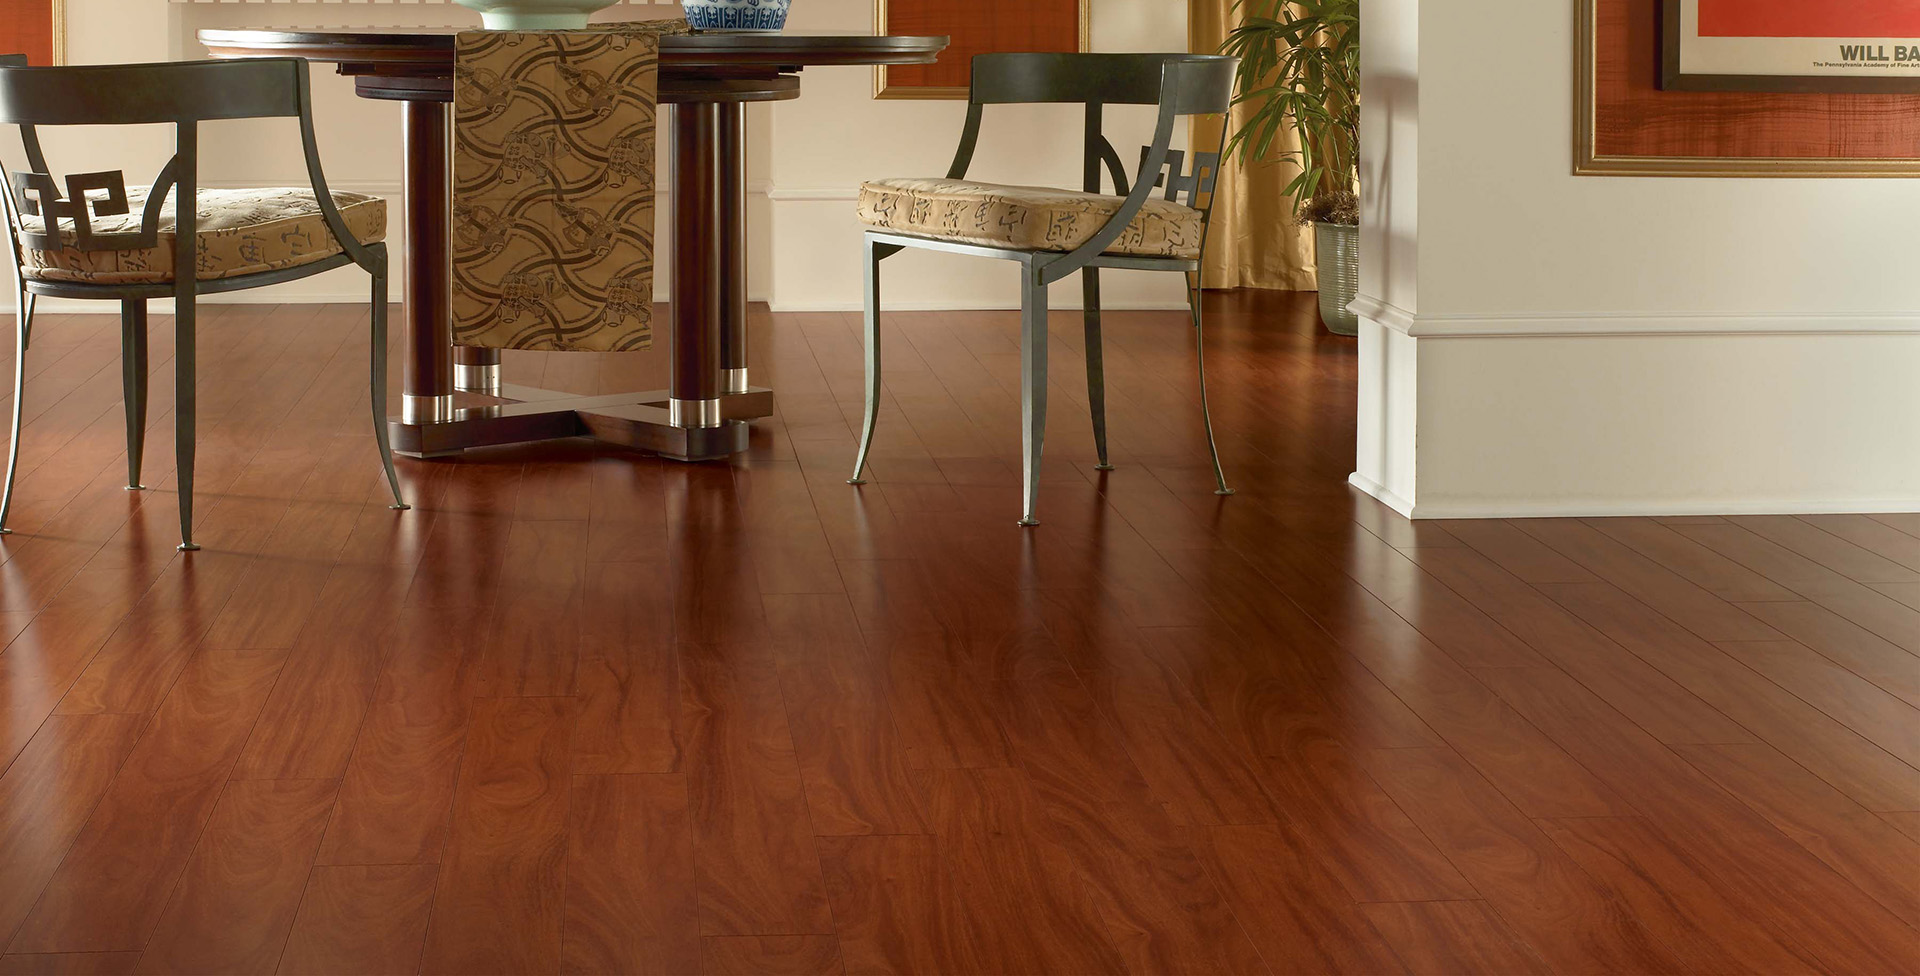 Laminate flooring houston hardwood flooring direct Wood flooring houston